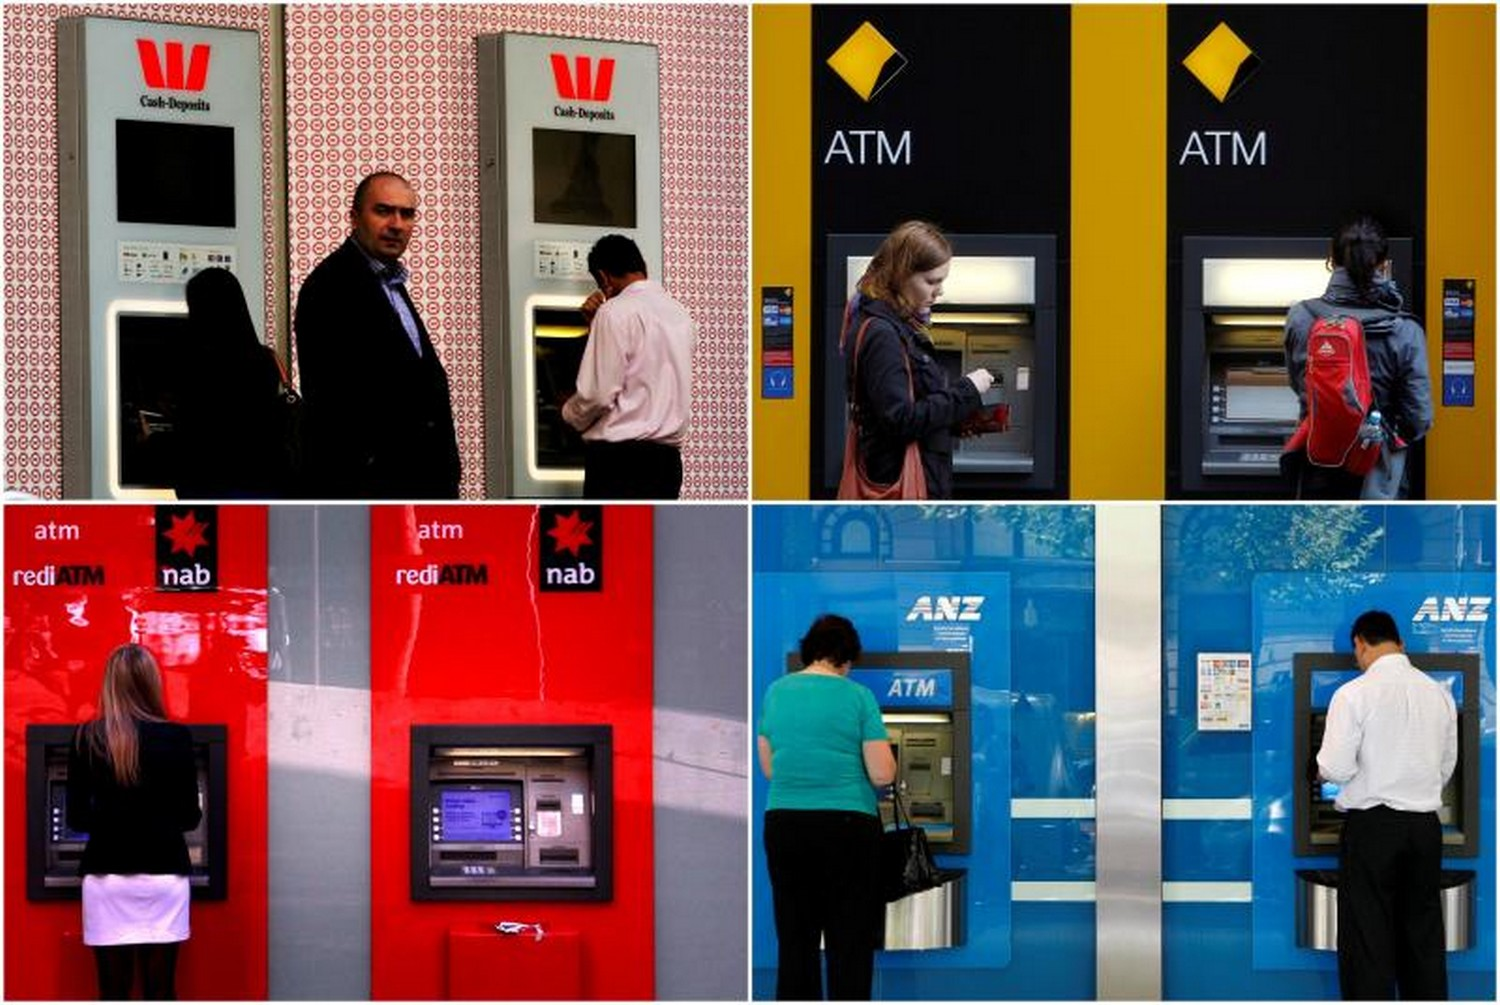 Australian banks have 'too much money', more may be on the way